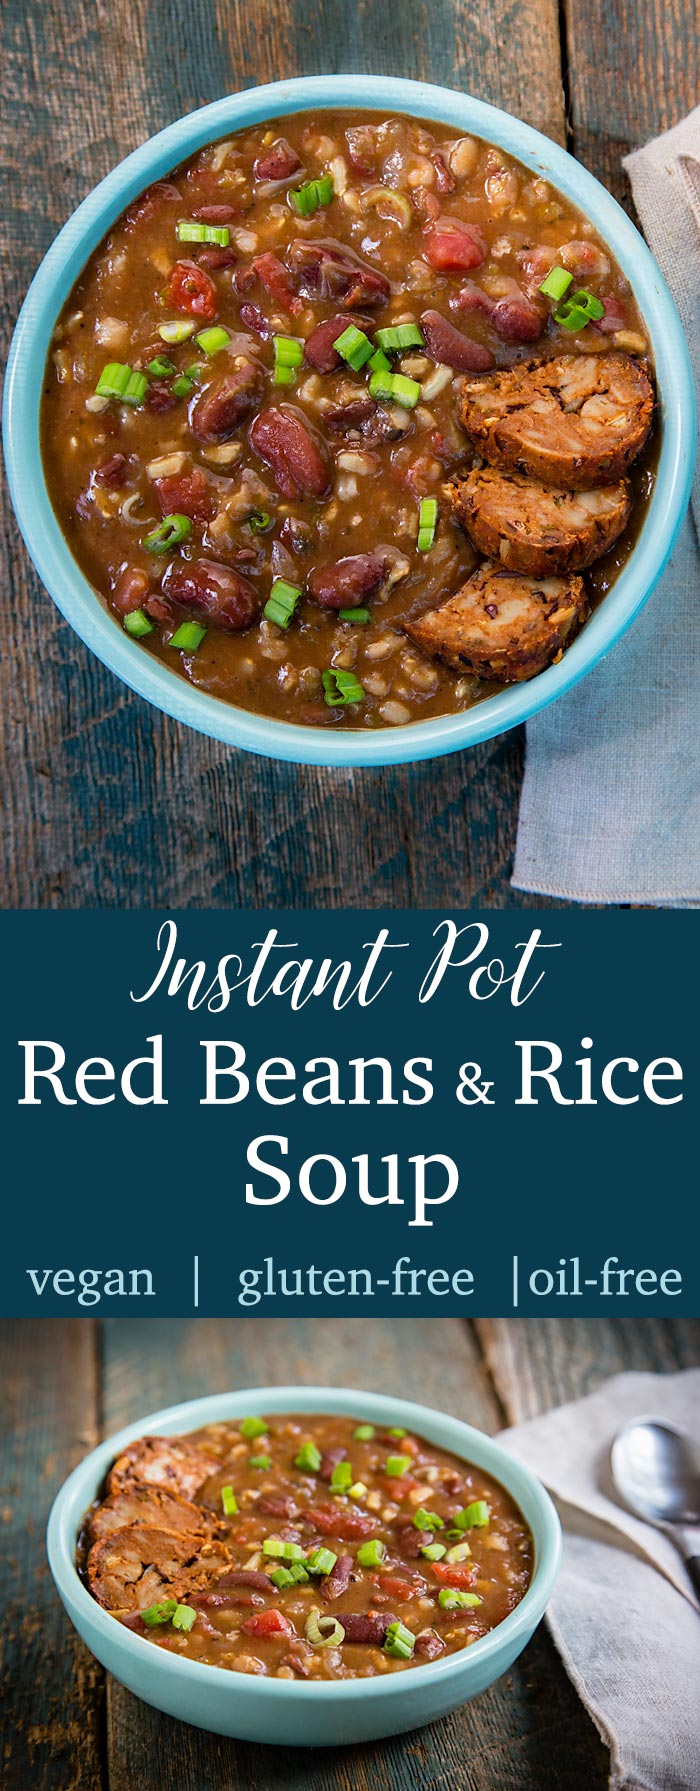 This vegan Instant Pot Red Beans and Rice Soup is a hearty, richly seasoned soup version of the traditional New Orleans' dish. Low in fat and high in plant protein, this gluten-free soup counts as 2 smart points on the Weight Watchers Freestyle program.